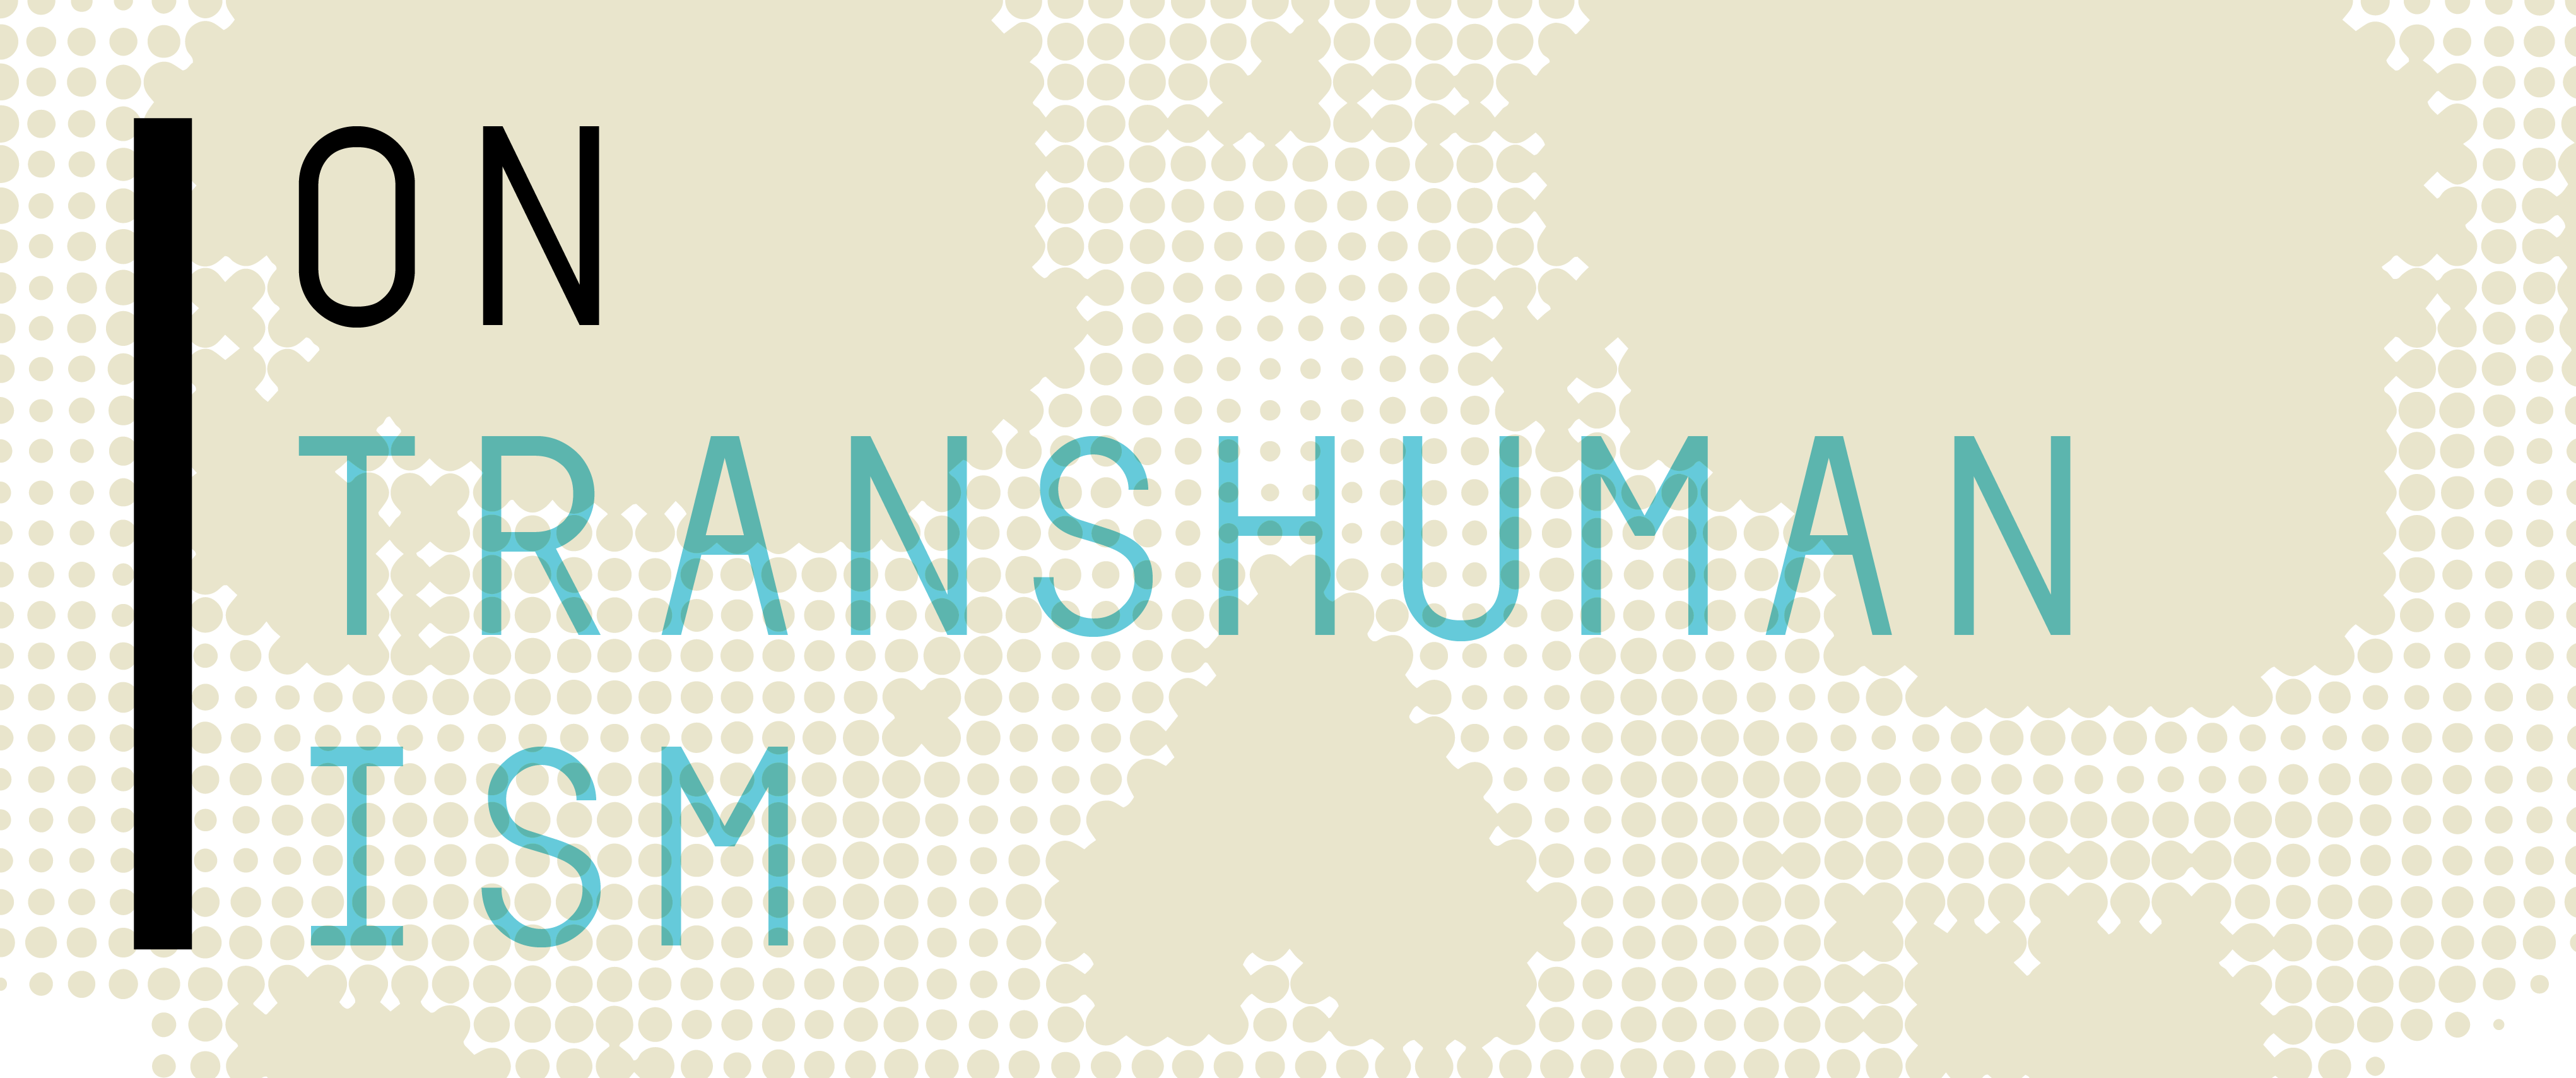 On Transhumanism